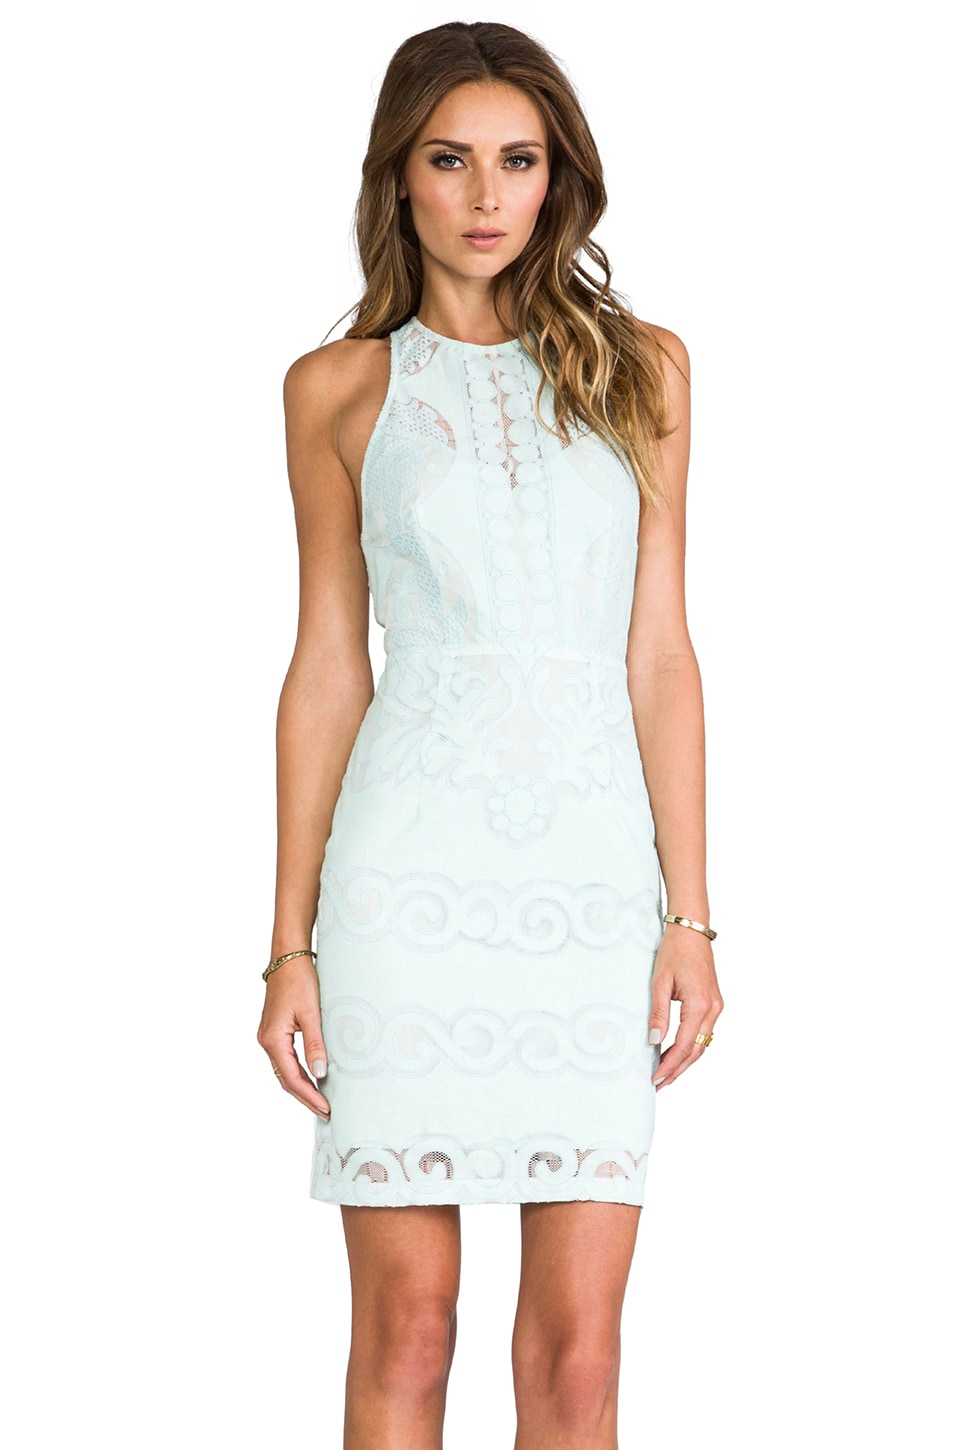 Shona Joy Mirage Cocktail Dress in Mint